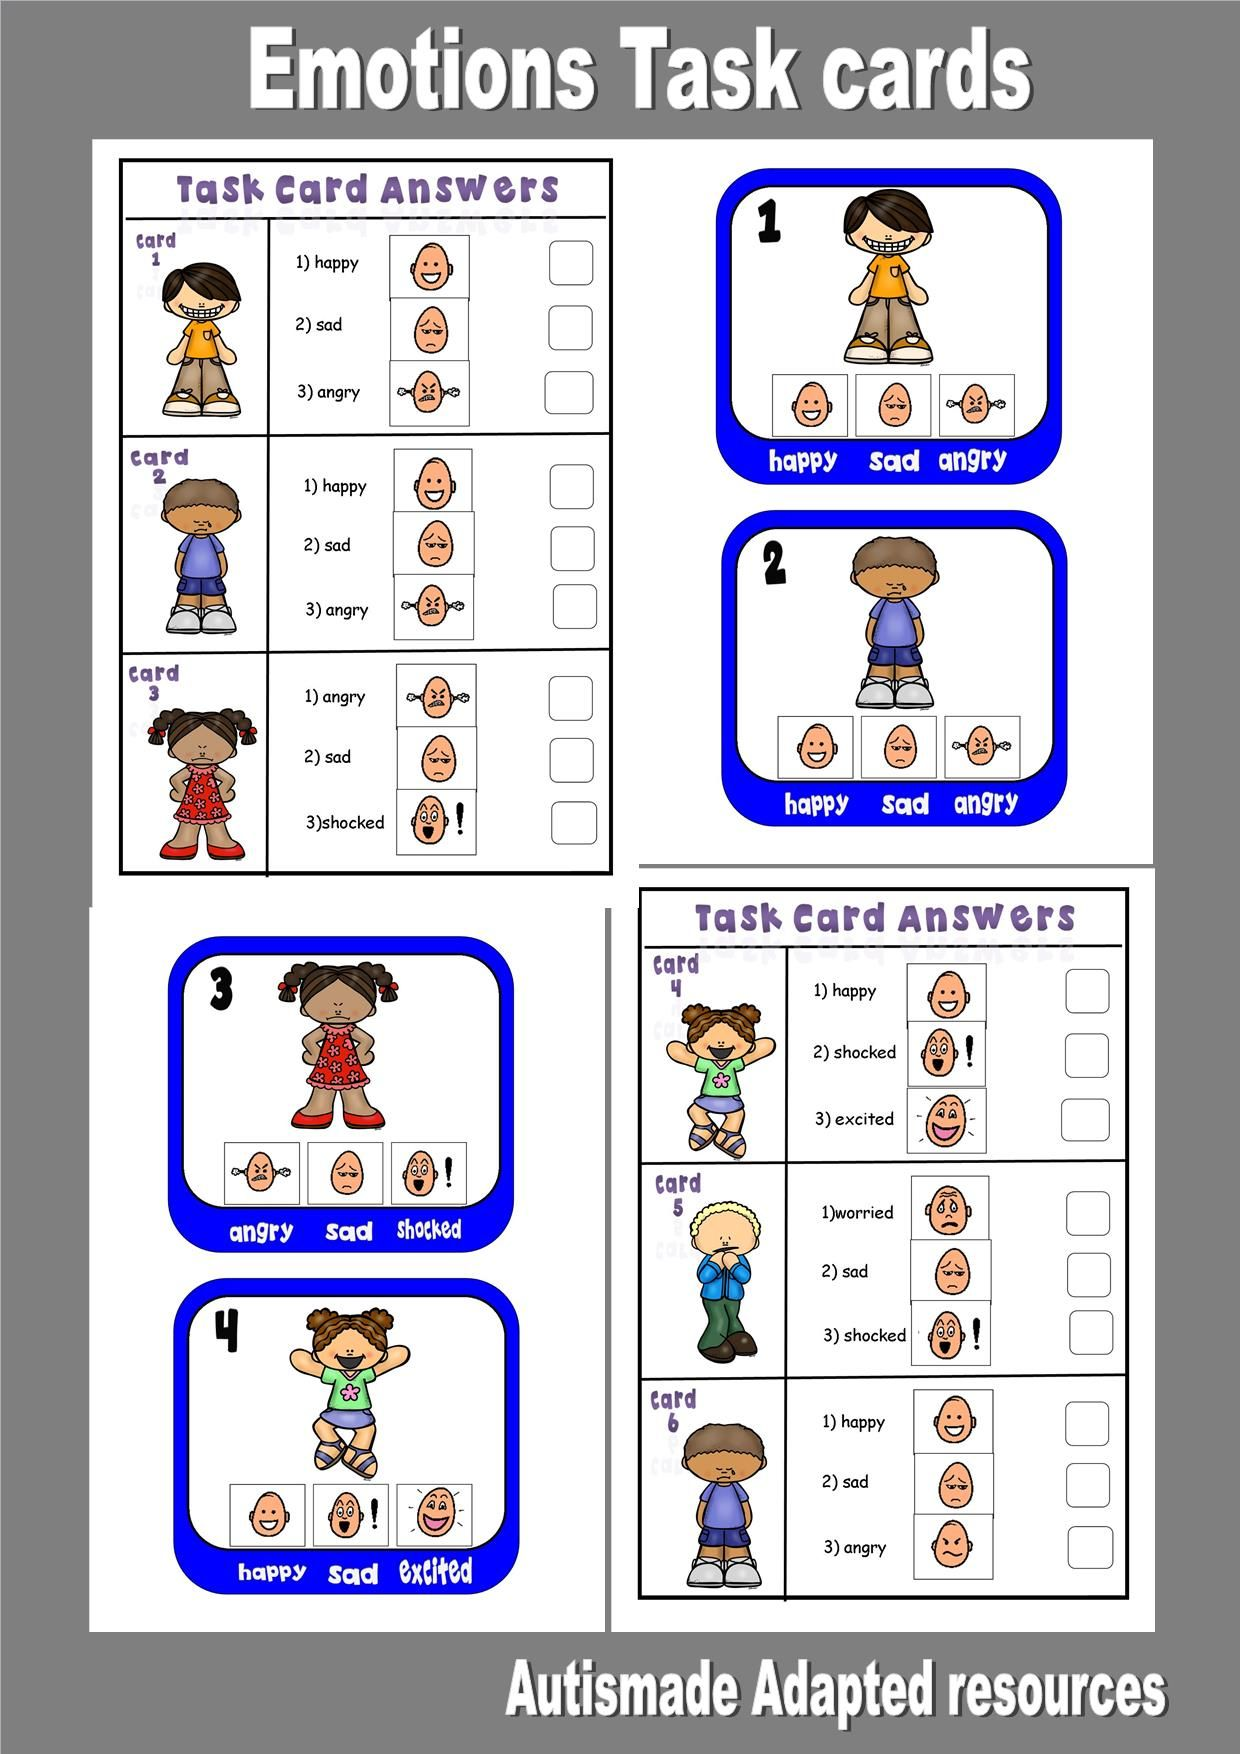 Emotions Vocabulary tasks for students with Autism